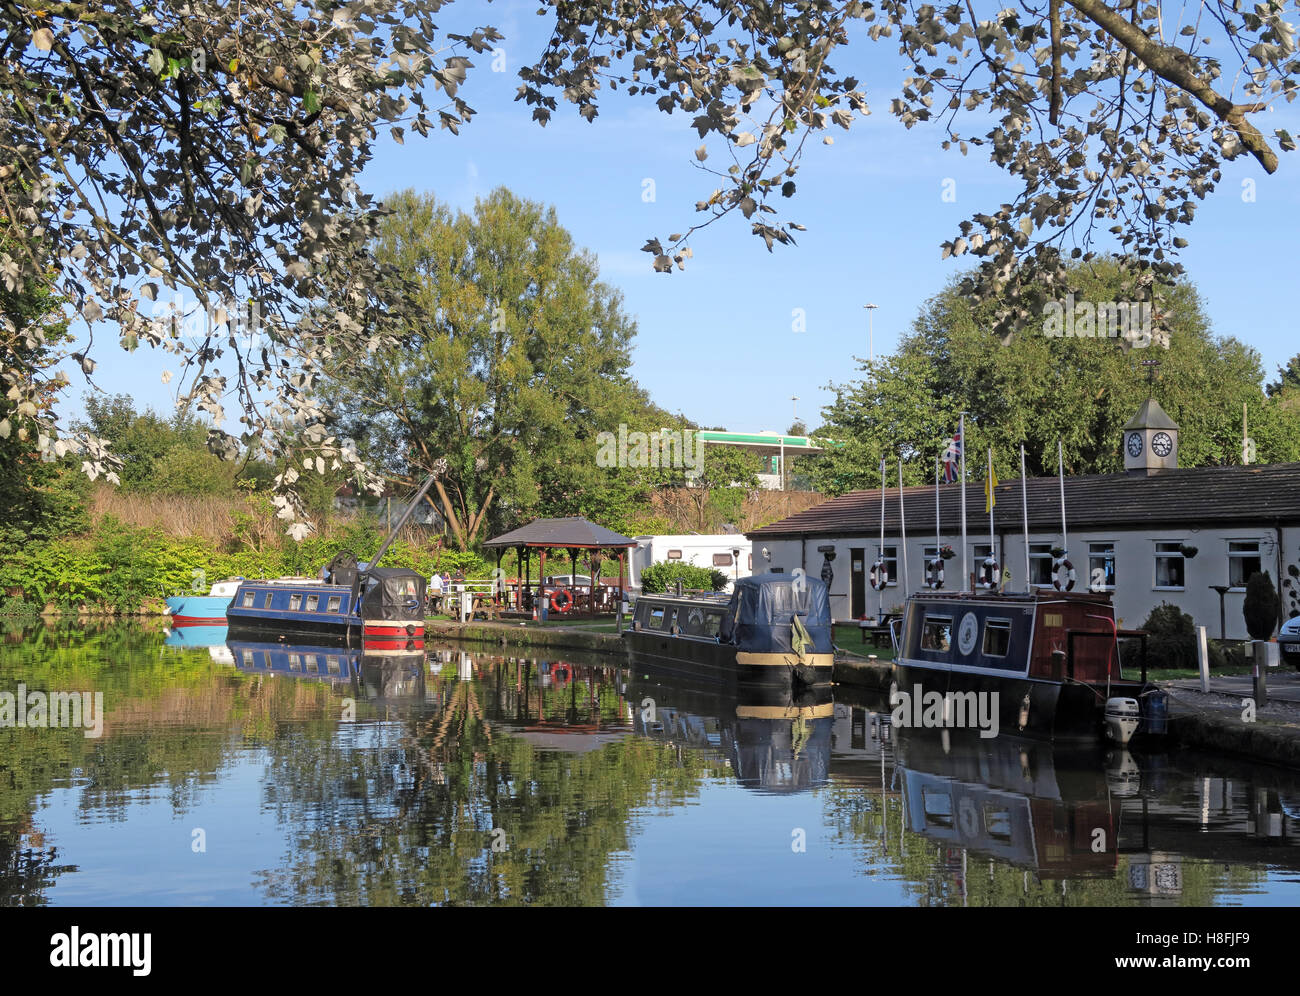 country,countryside,travel,tourism,tourist,walk,walking,cycle,track,trees,leisure.beautiful,still,reflections,Cheshire,England,UK,path,tow,towpath,NW,north,west,Halton,marina,boats,boat,barge,barges,narrowboat,butty,Cycle Track,GoTonySmith,@HotpixUK,Tony,Smith,UK,GB,Great,Britain,United,Kingdom,English,British,England,problem,with,problem with,issue with,Buy Pictures of,Buy Images Of,Images of,Stock Images,Tony Smith,United Kingdom,Great Britain,British Isles,Runcorn Canal,Runcorn Bridgewater Canal,Bridgewater Canal Halton